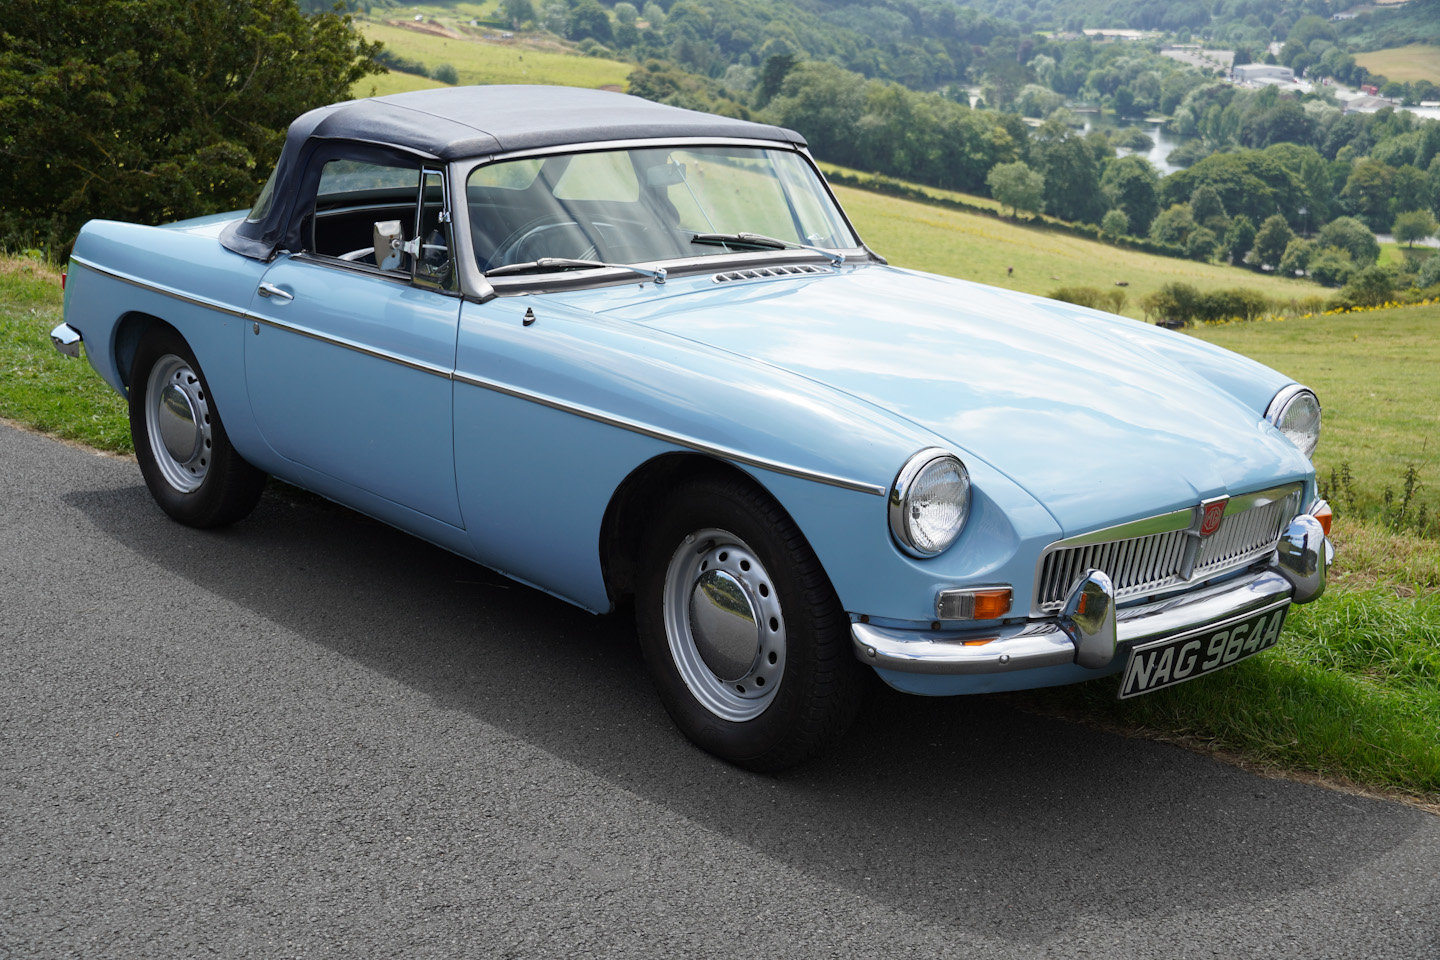 1963 MGB Roadster - Ex Southern California Car For Sale (picture 1 of 10)